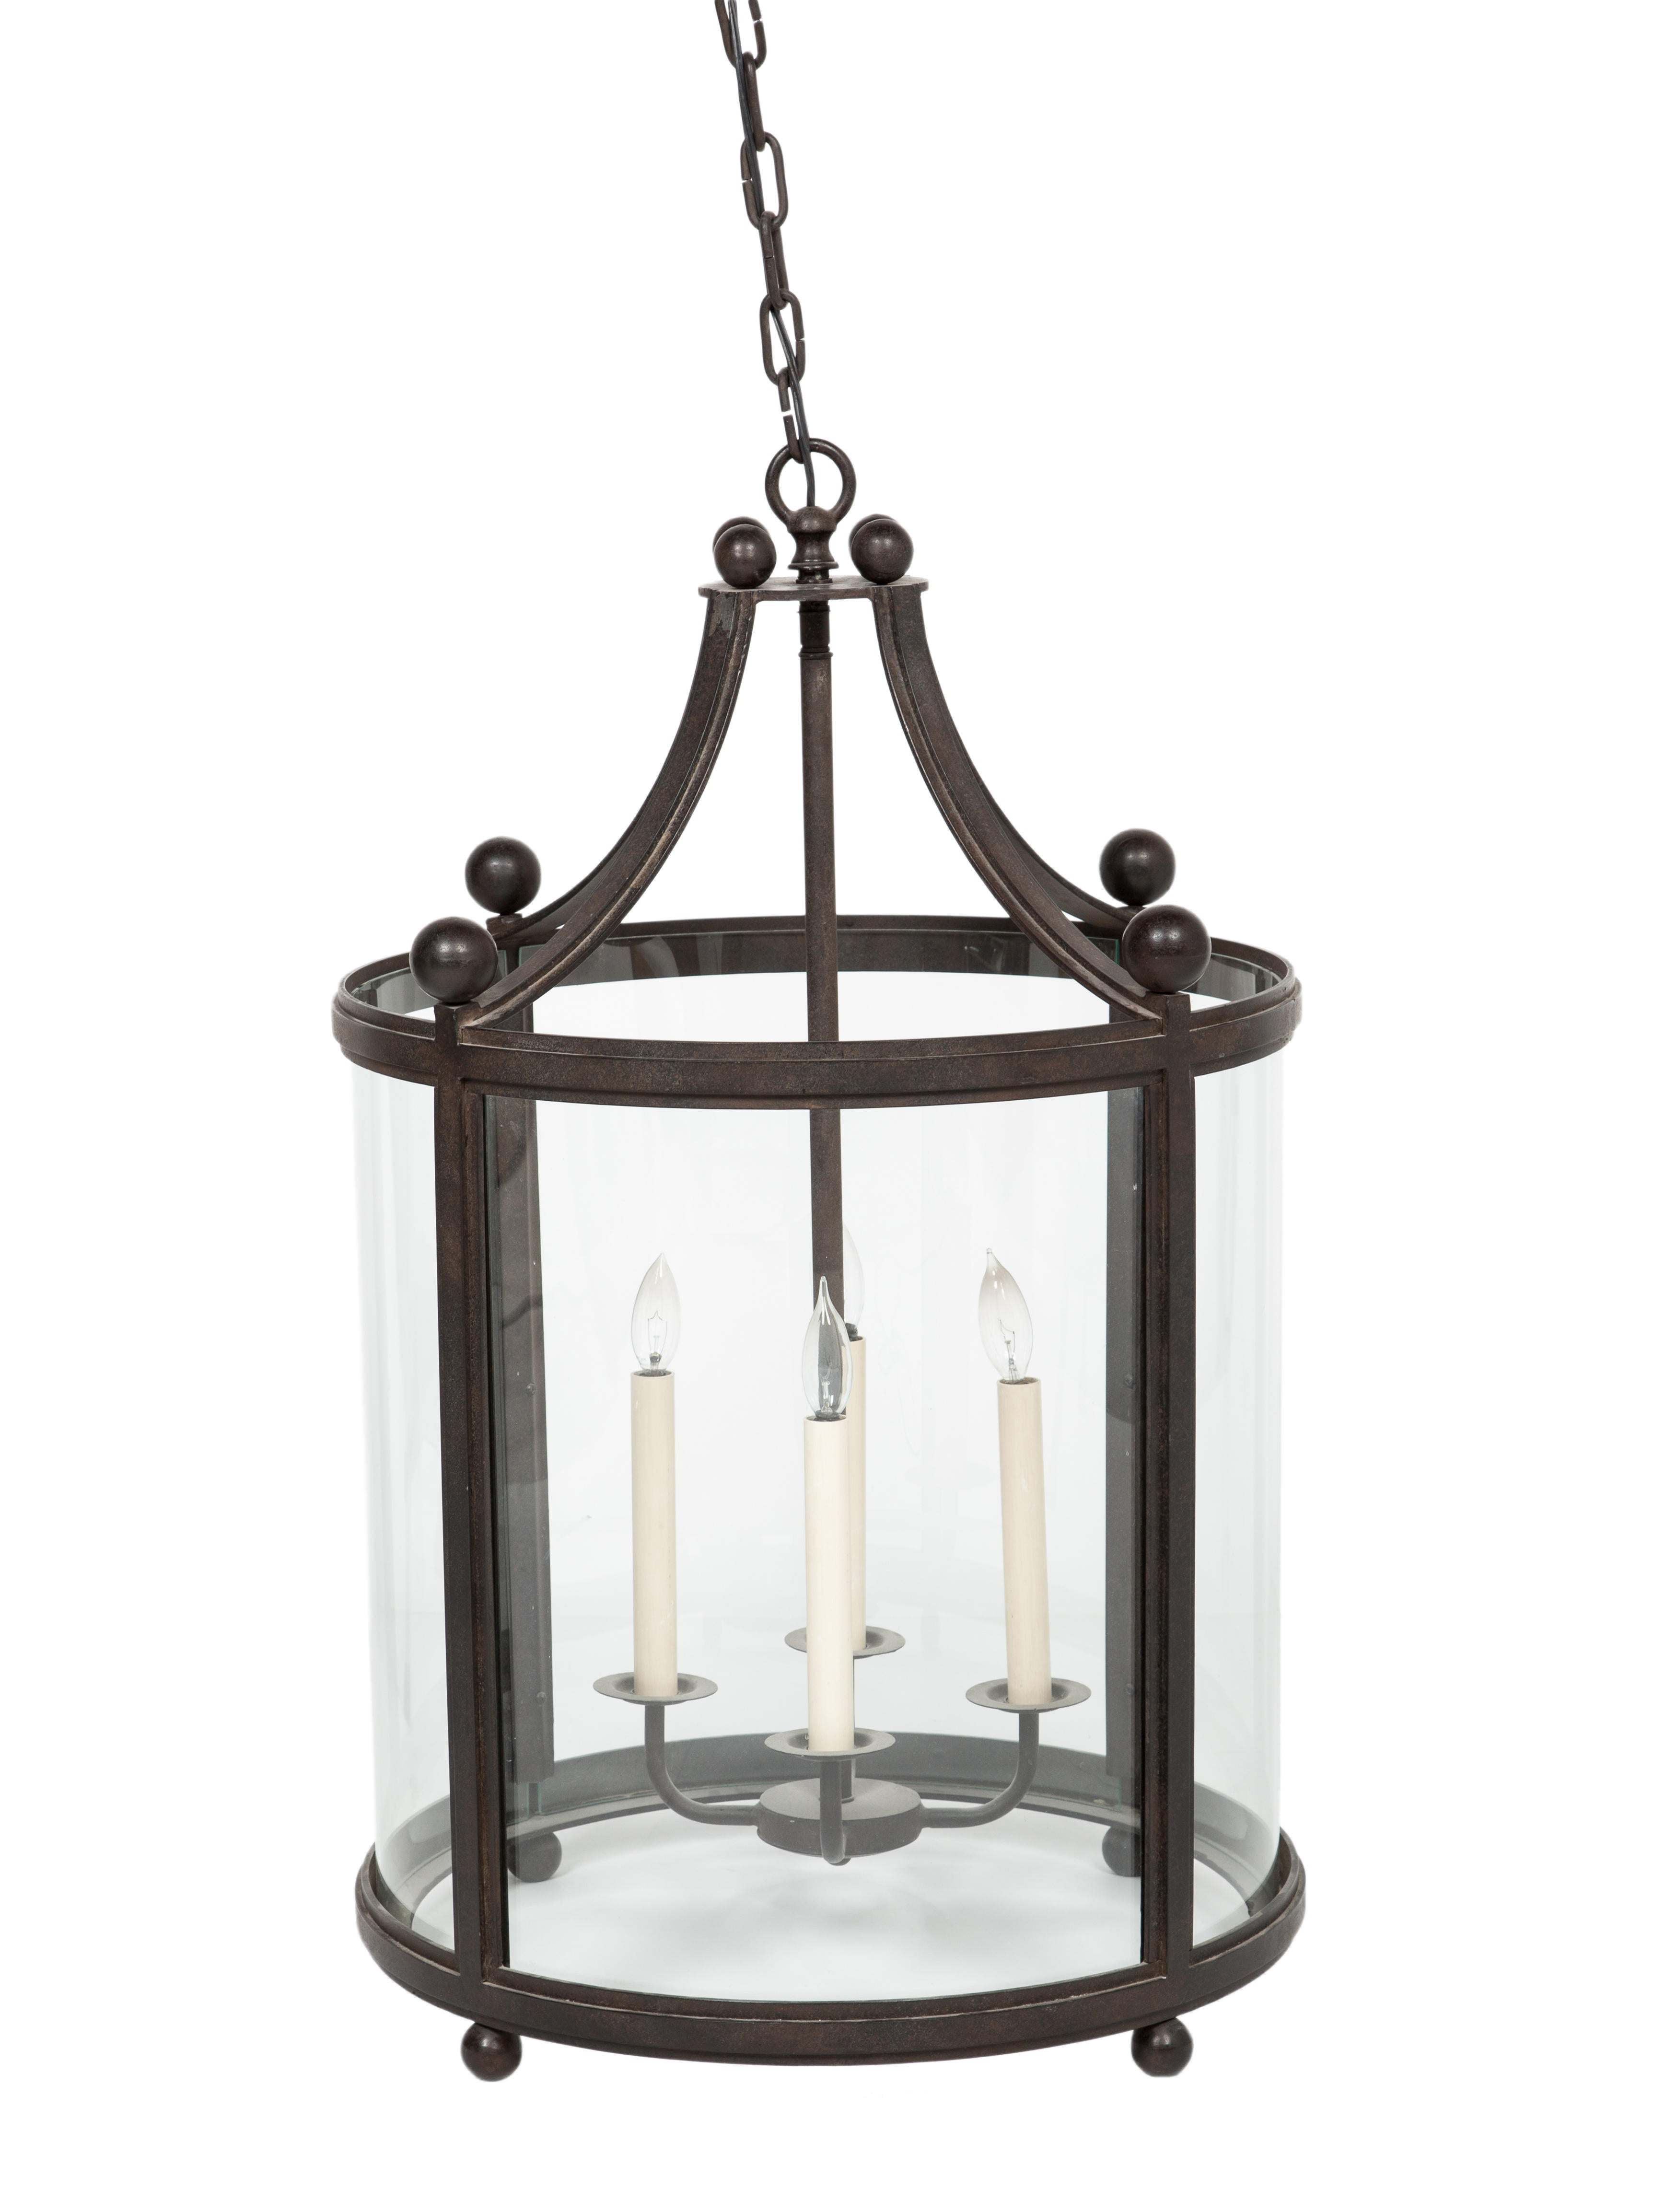 Paul ferrante wrought iron lantern chandelier lighting wrought iron lantern chandelier aloadofball Image collections